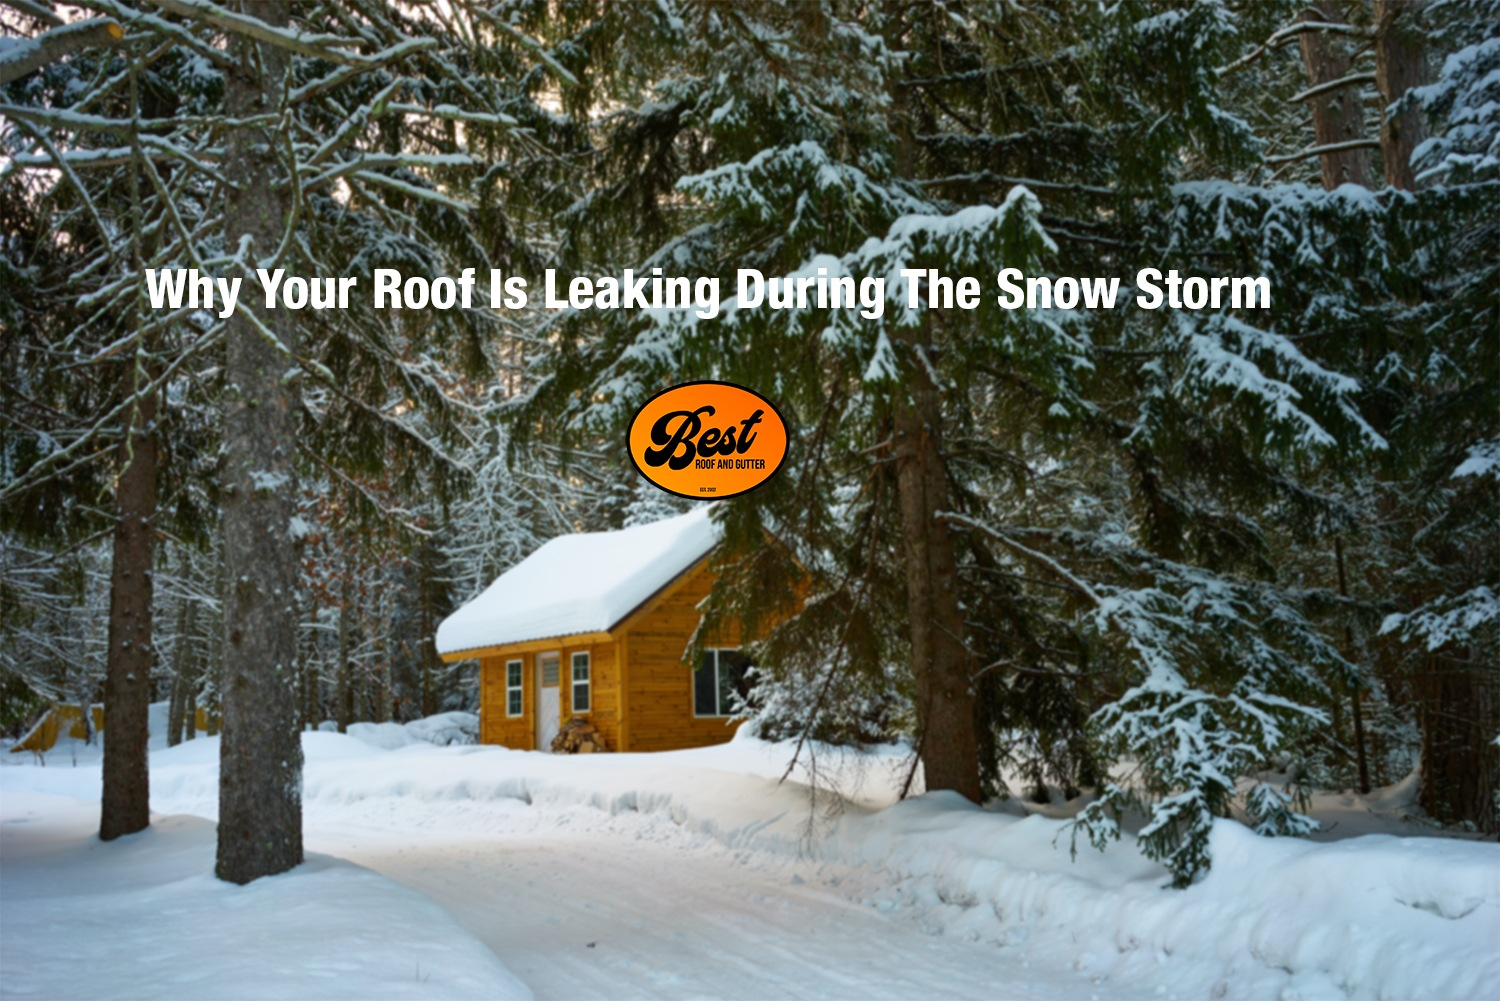 Why Your Roof Is Leaking During The Snow Storm